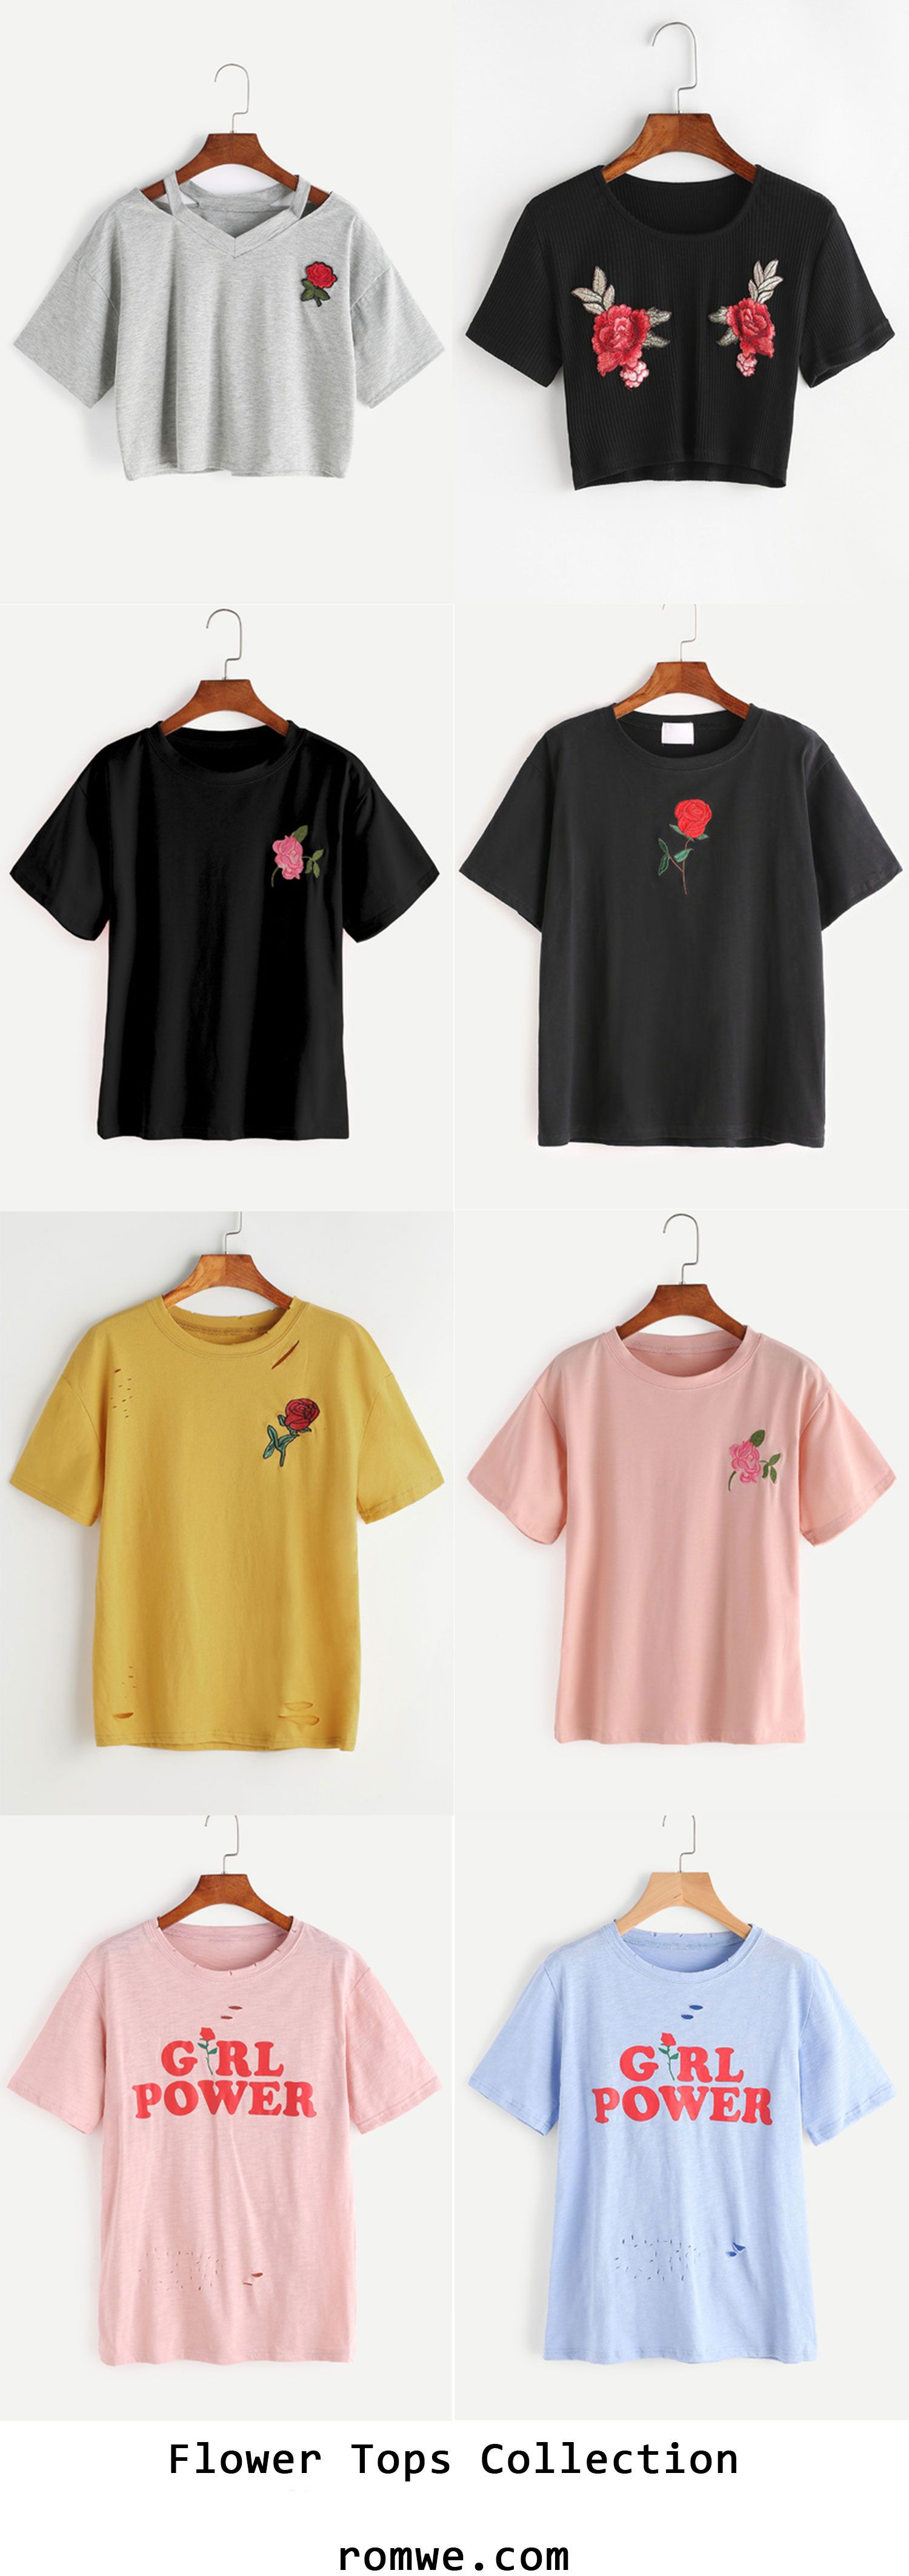 Flower Tops Collection 2017 - romwe.com